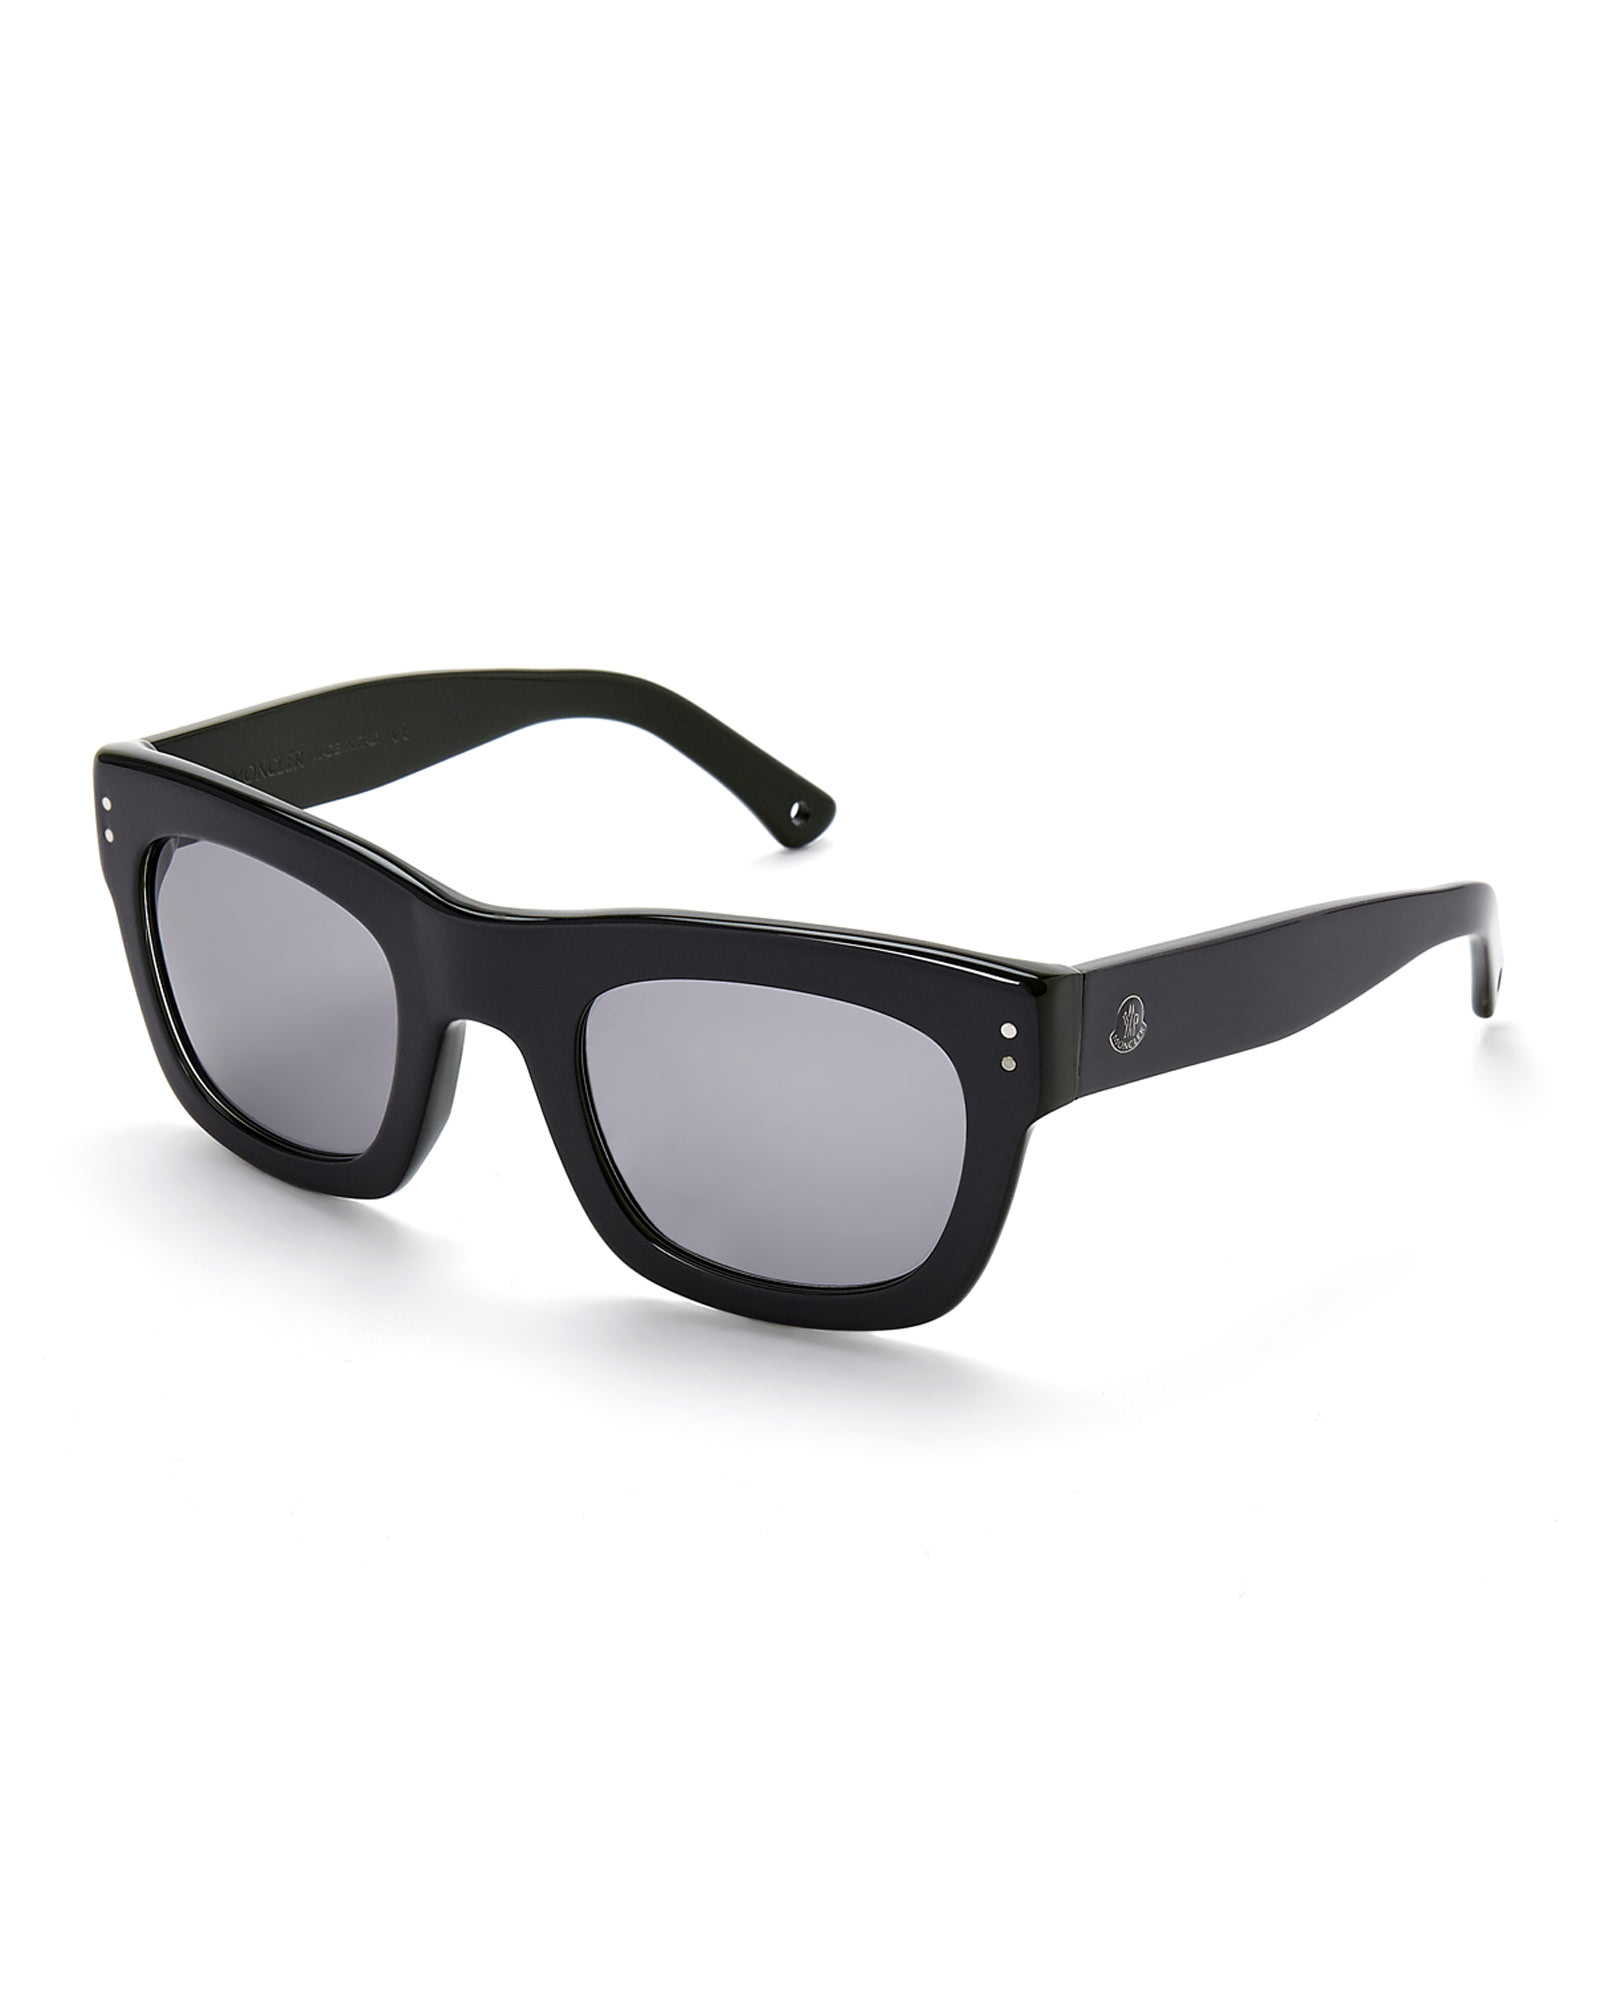 Moncler Black Wayfarer Sunglasses